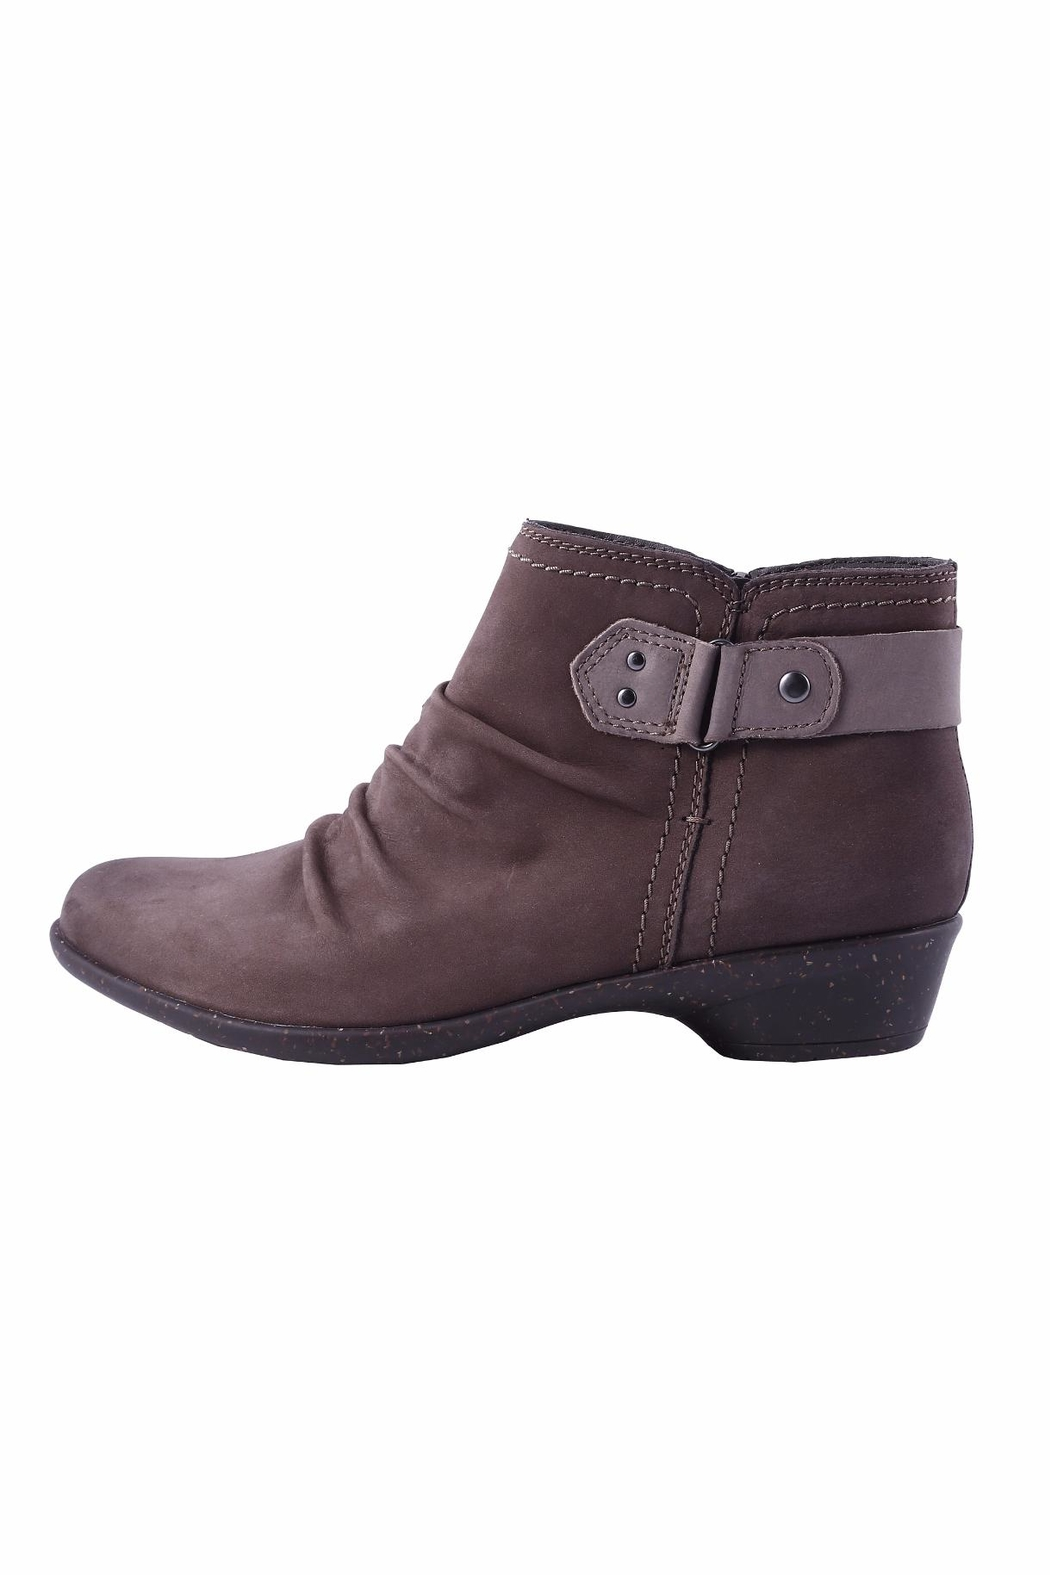 Cobb Hill Nicole Ankle Booties - Front Cropped Image